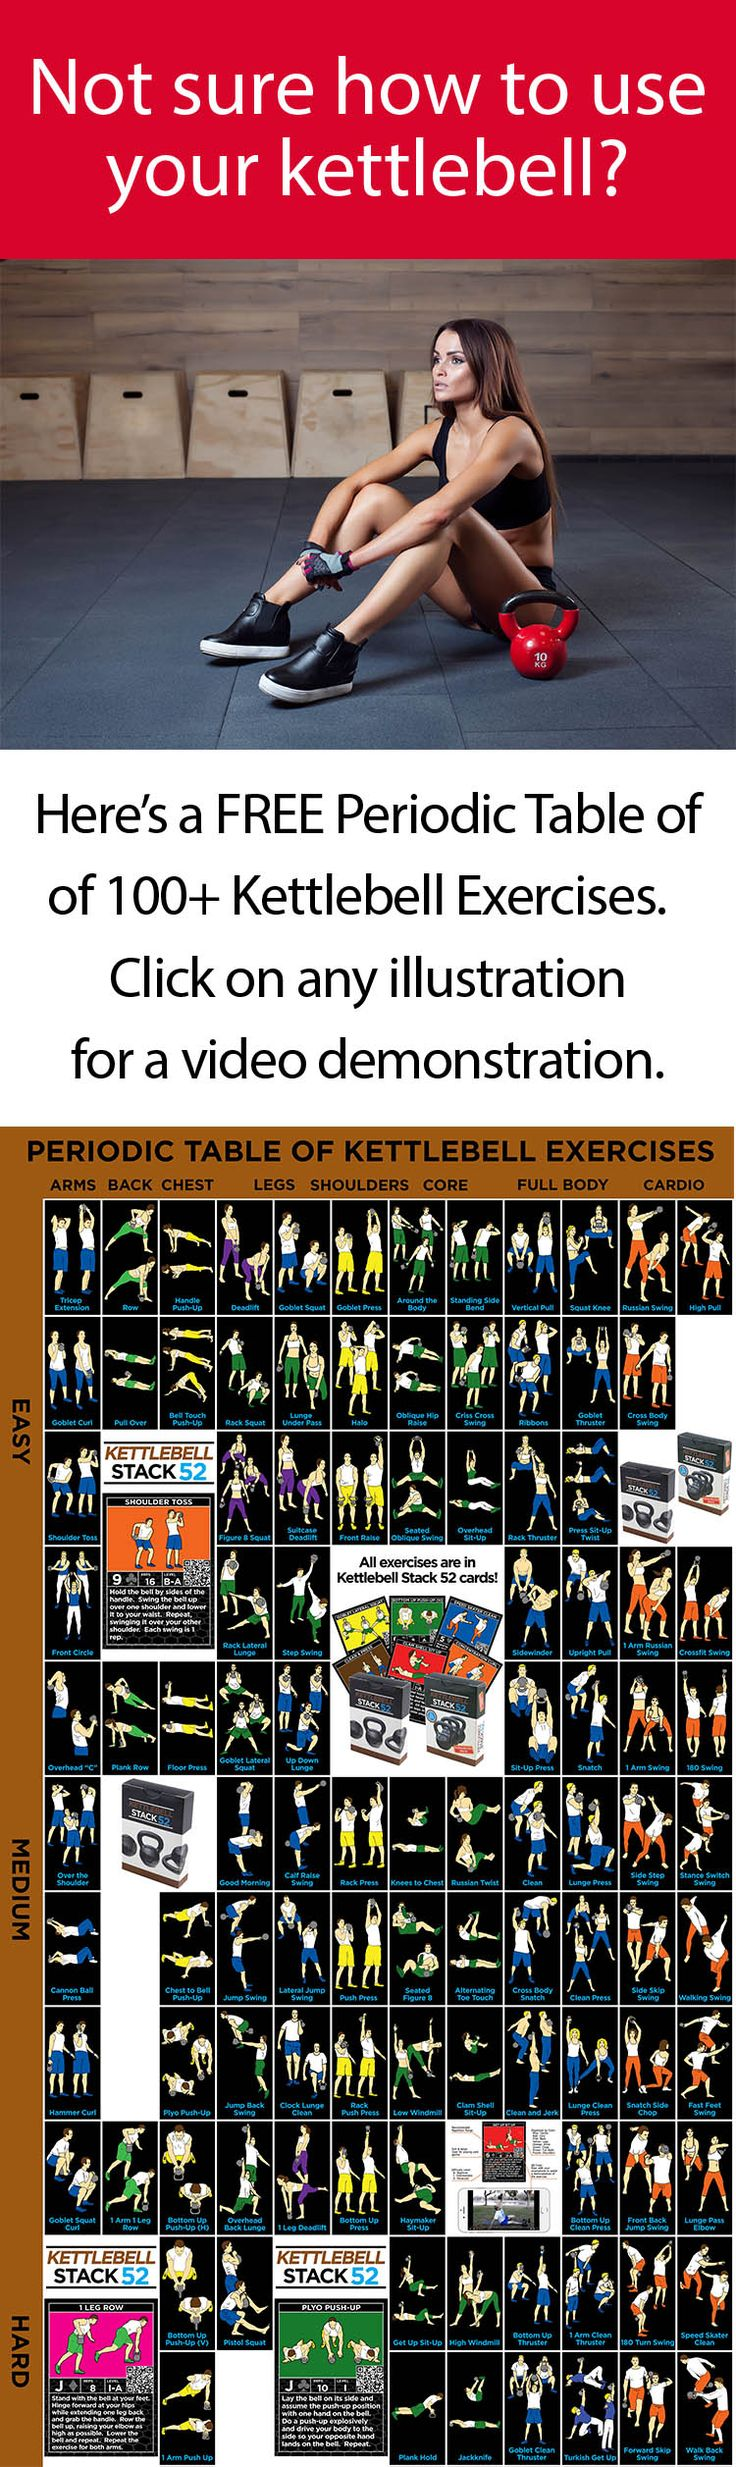 this free periodic table of kettlebell exercises has over 100 kettlebell